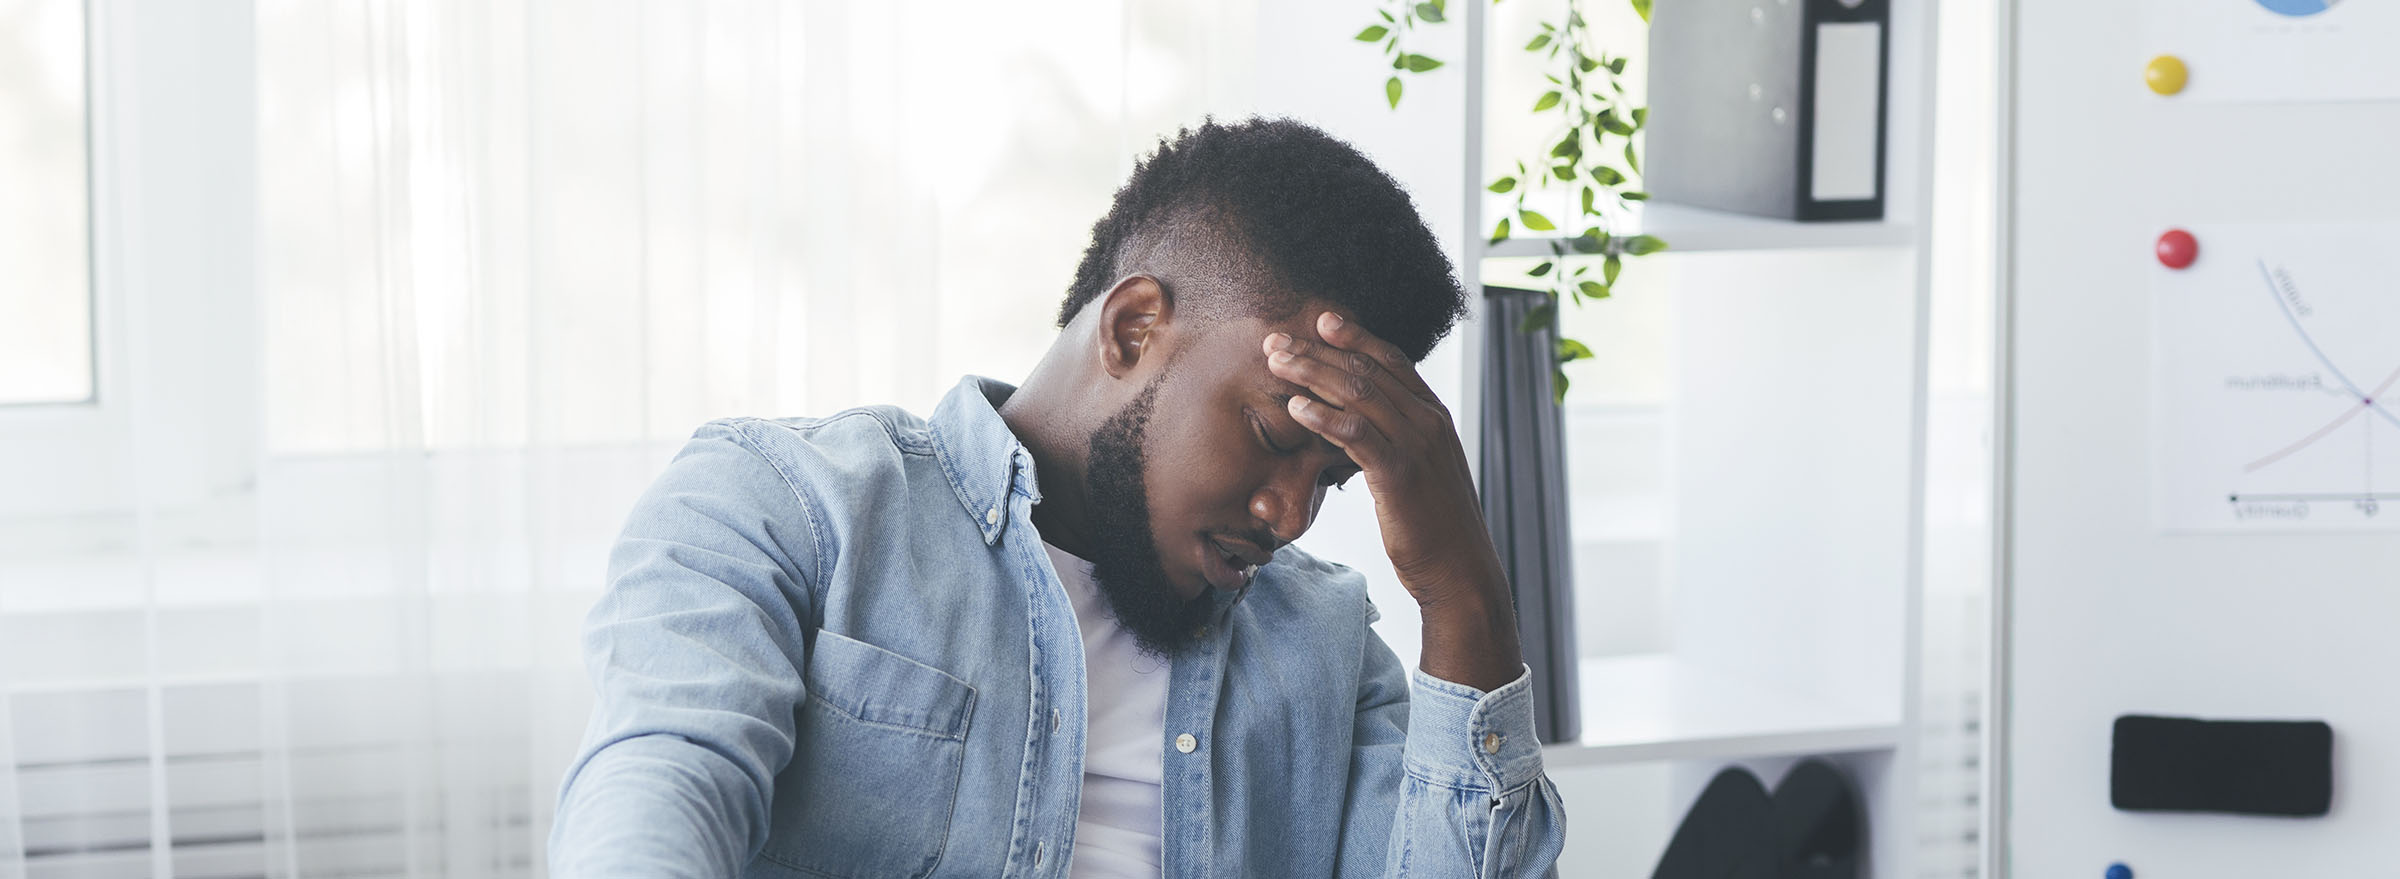 Business problems. Depressed black businessman drinking alcohol at workplace in office, having financial issues.